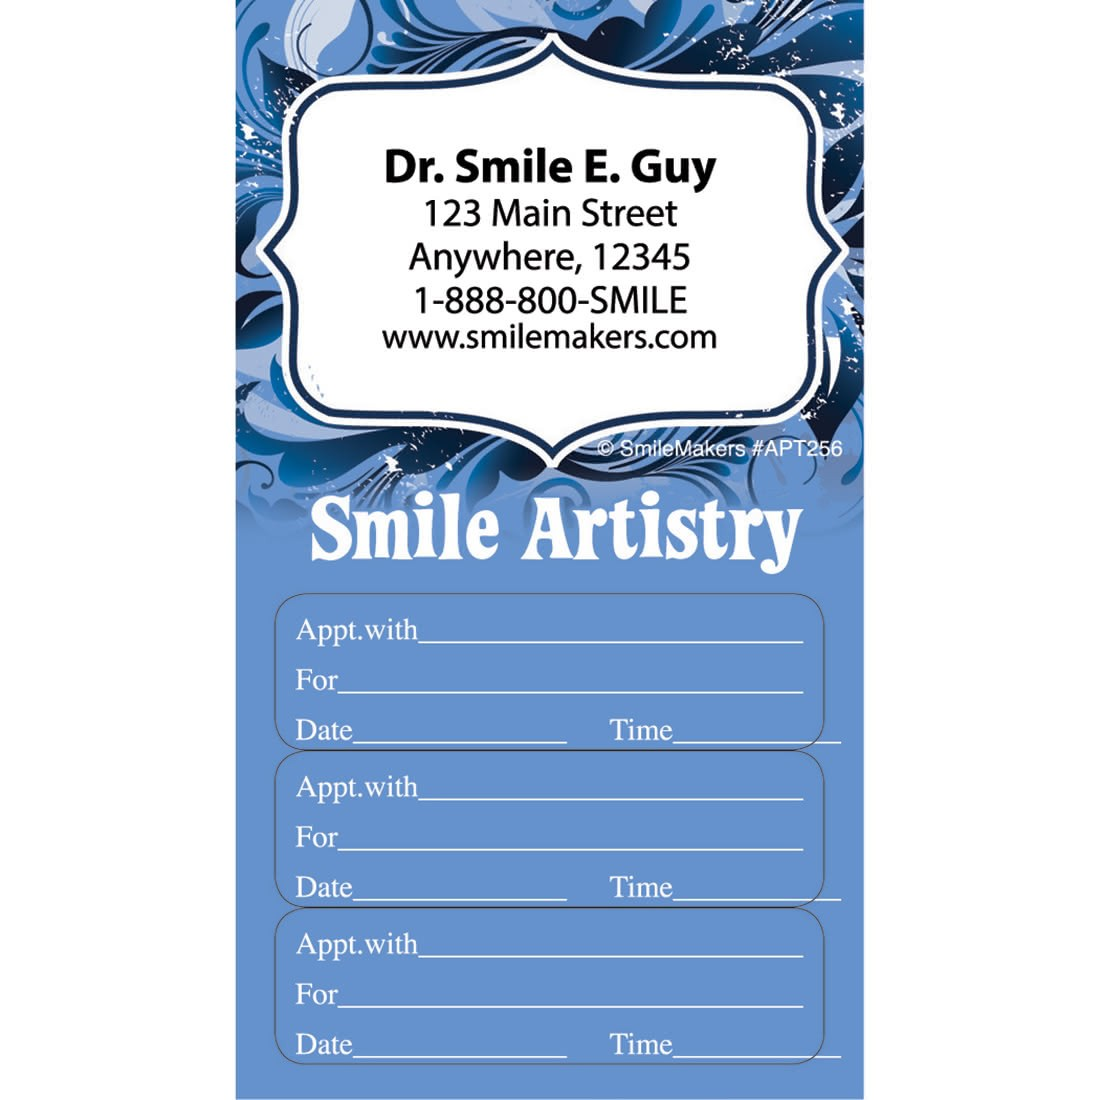 Custom Smile Artistry Three Sticker Appointment Cards [image]